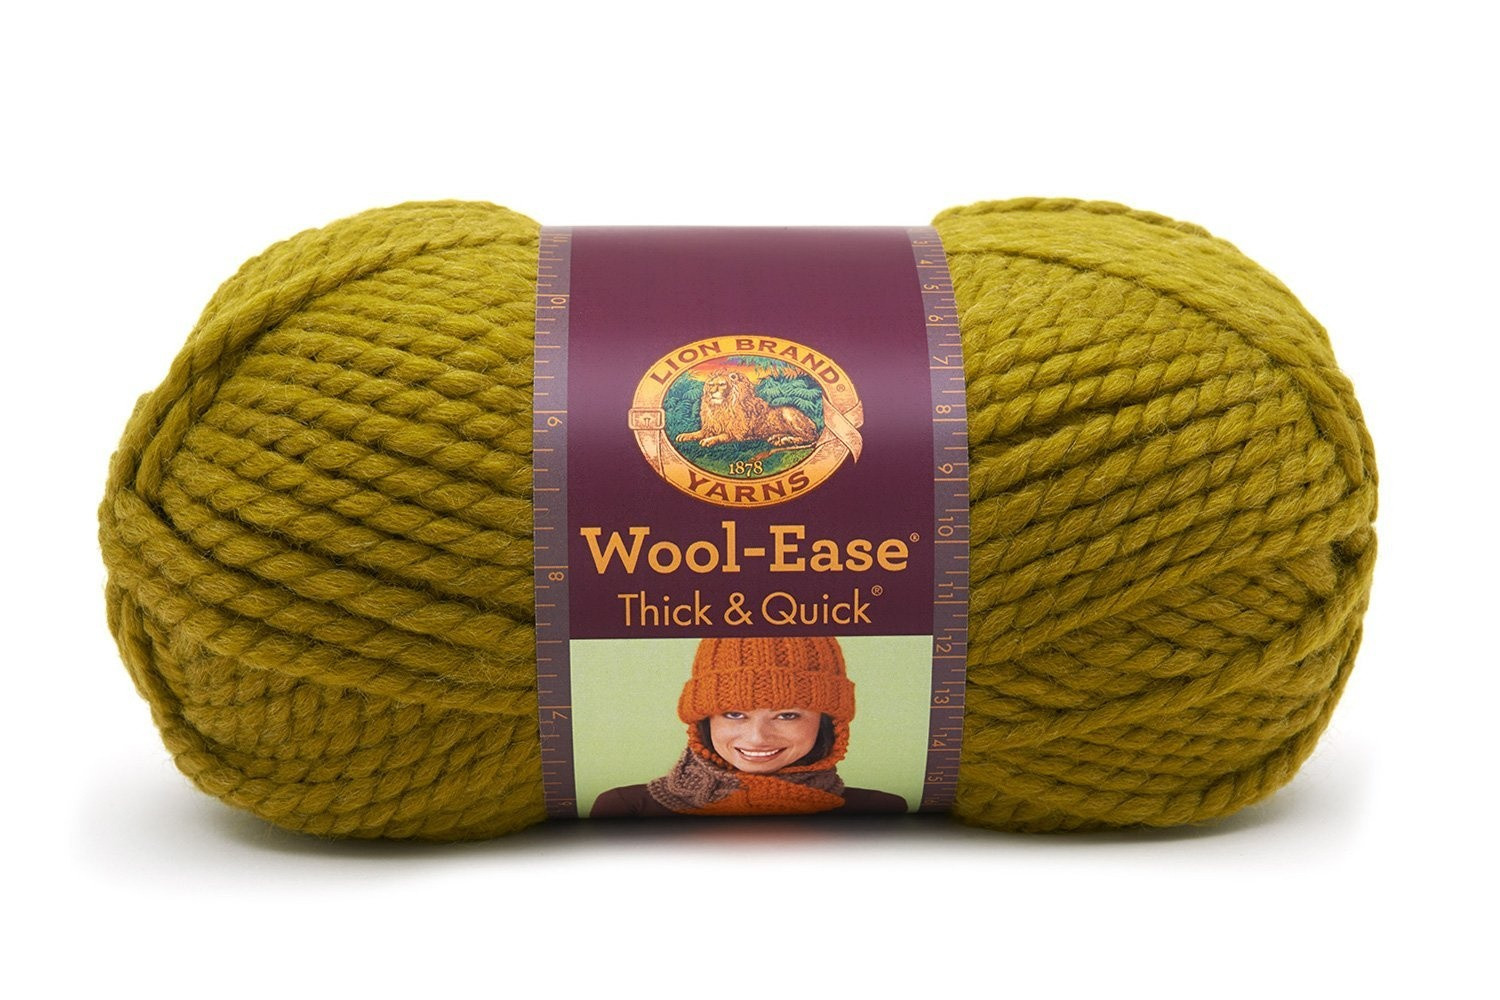 Wool Ease Thick & Quick Yarn Inspirational Lion Brand Yarn 640 136f Wool Ease Thick and Quick Yarn Of Great 46 Pictures Wool Ease Thick & Quick Yarn